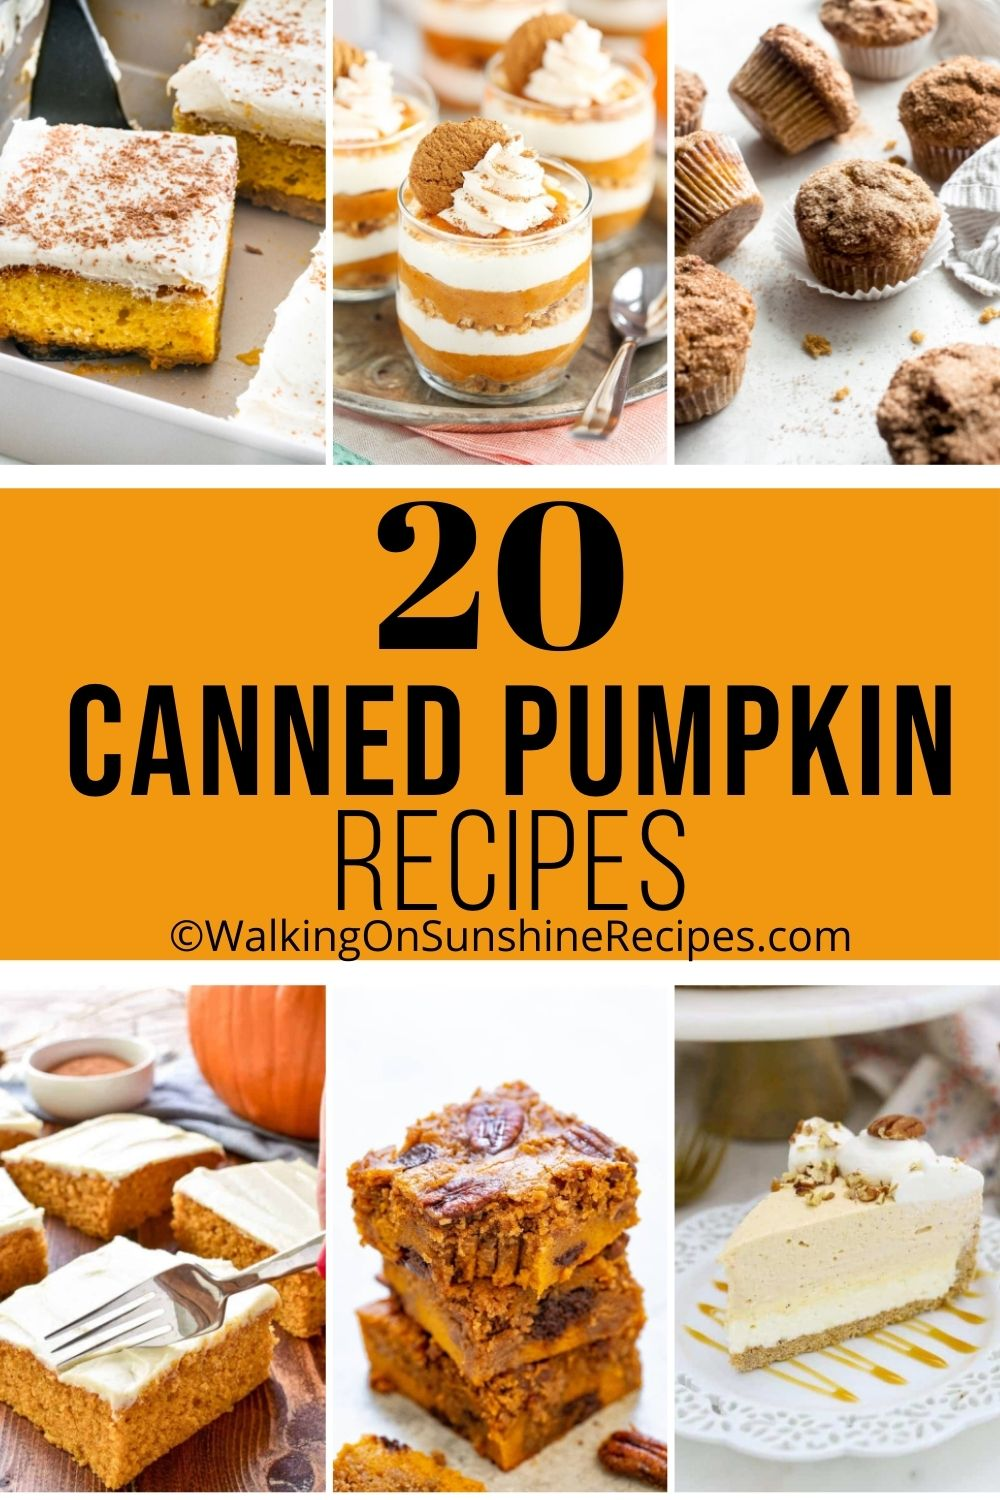 A collection of pumpkin desserts and recipes.